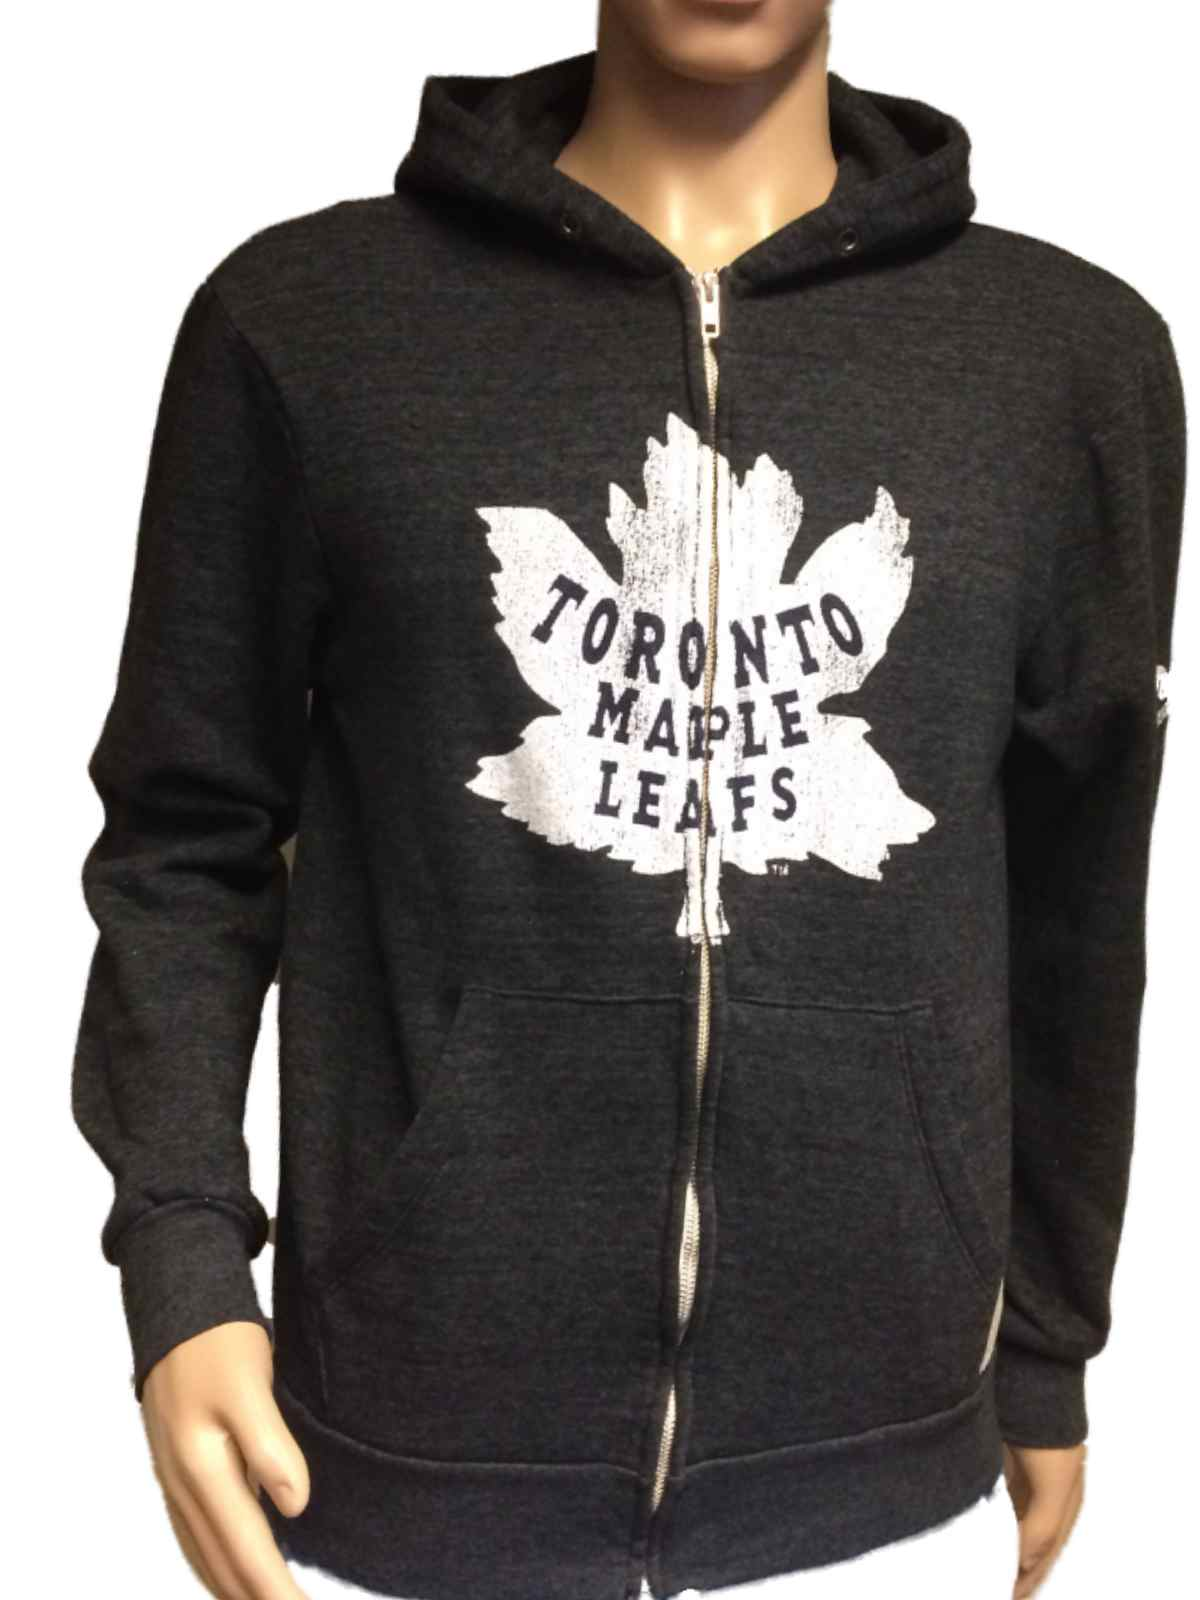 ac75f37ed Details about Toronto Maple Leafs Retro Brand Gray TriBlend Fleece Zip Up  Hoodie Jacket (M)